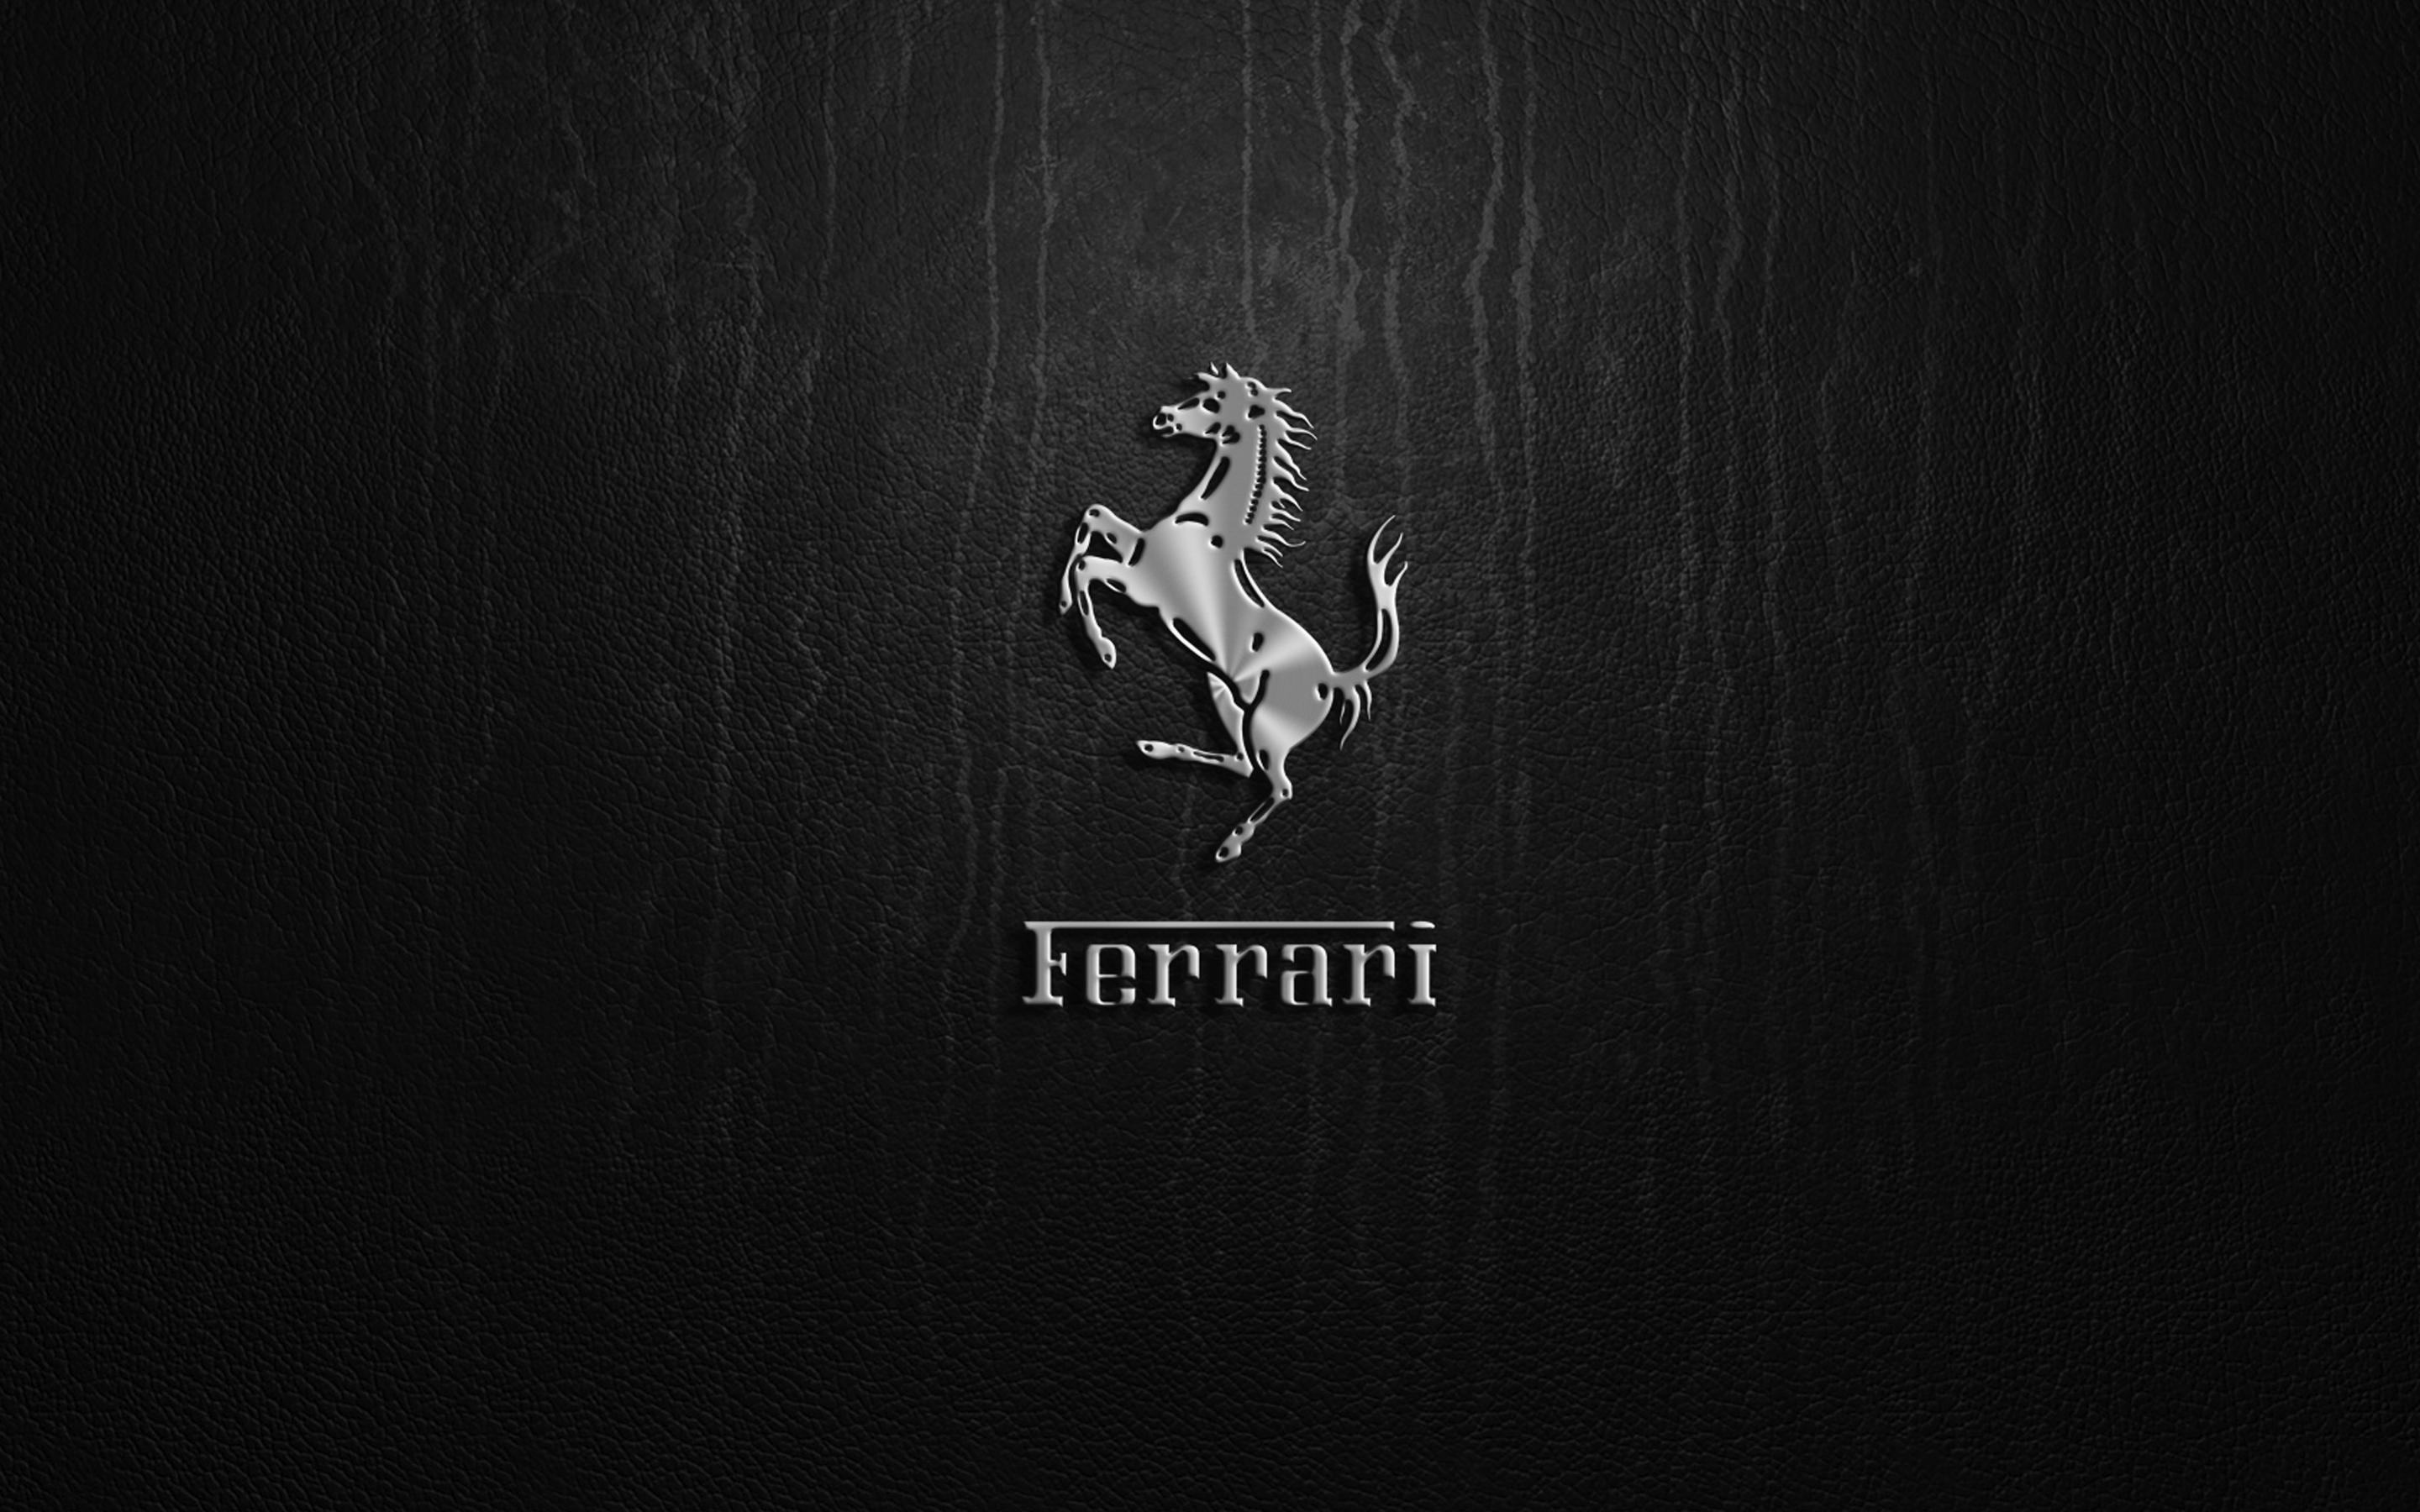 2880x1800 Ferrari-Logo-For-Android-wallpaper-wpt8404643